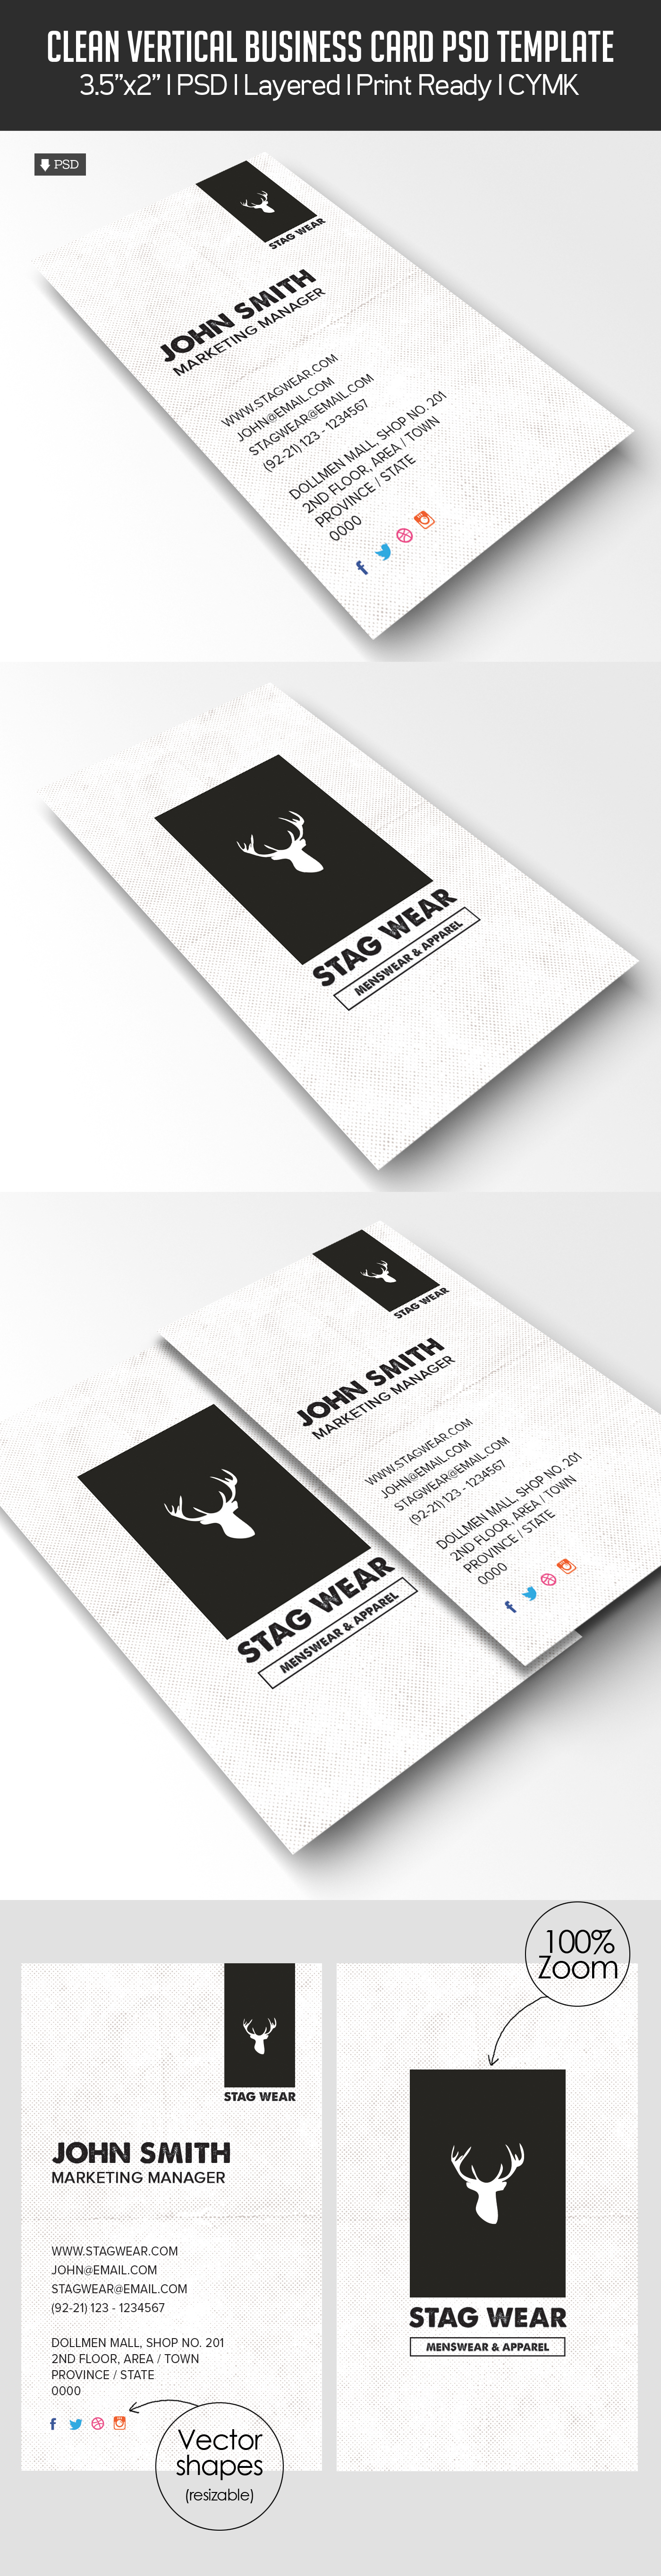 Freebie – Vertical Business Card PSD Template | Freebies | Graphic ...